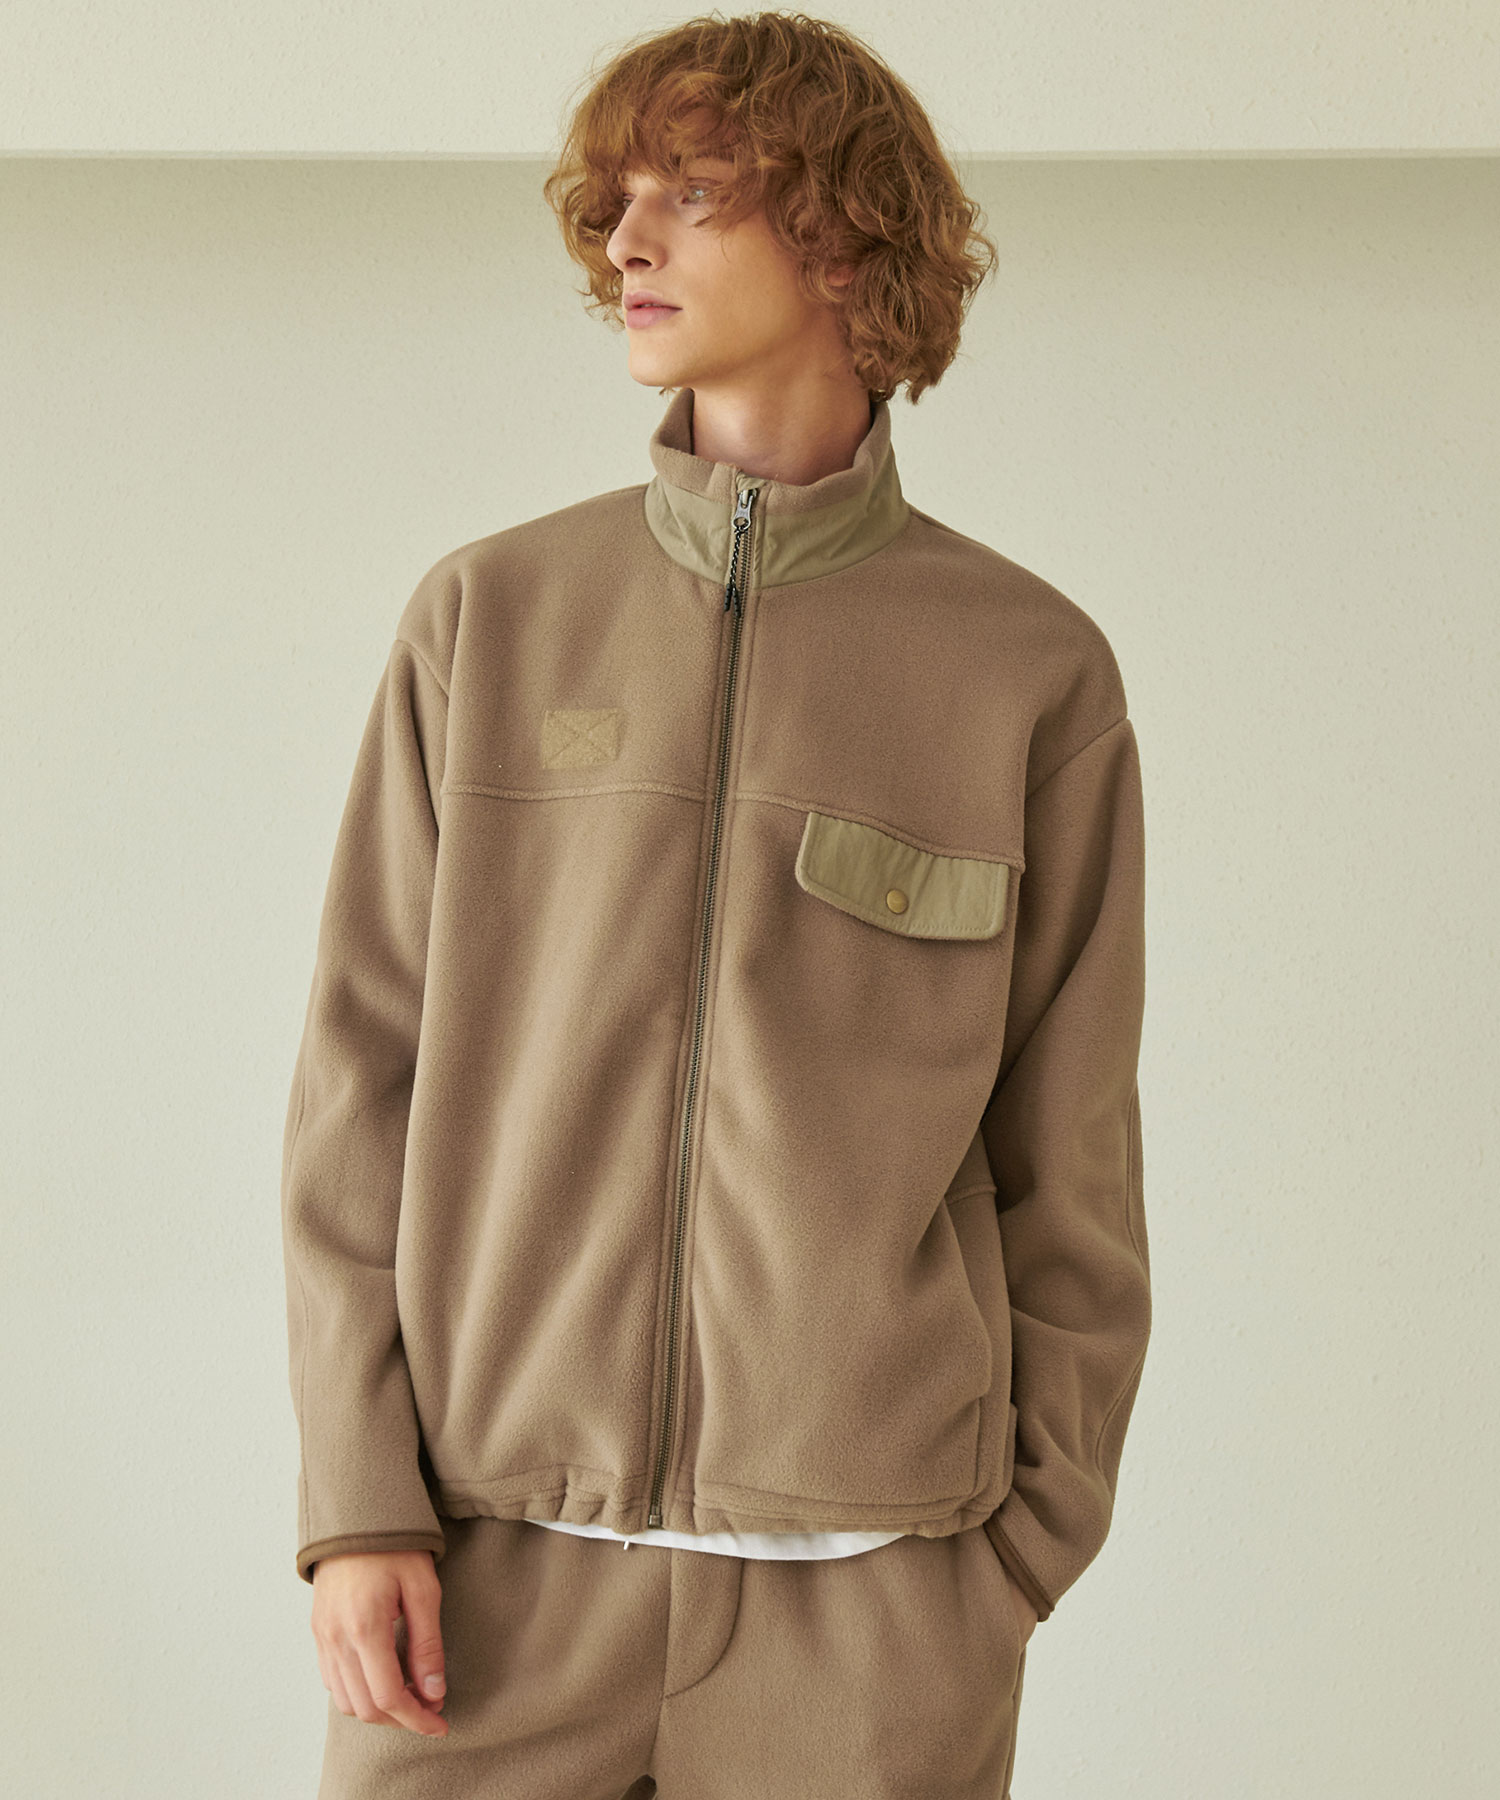 JK-208 P-3M ZIP UP_BG